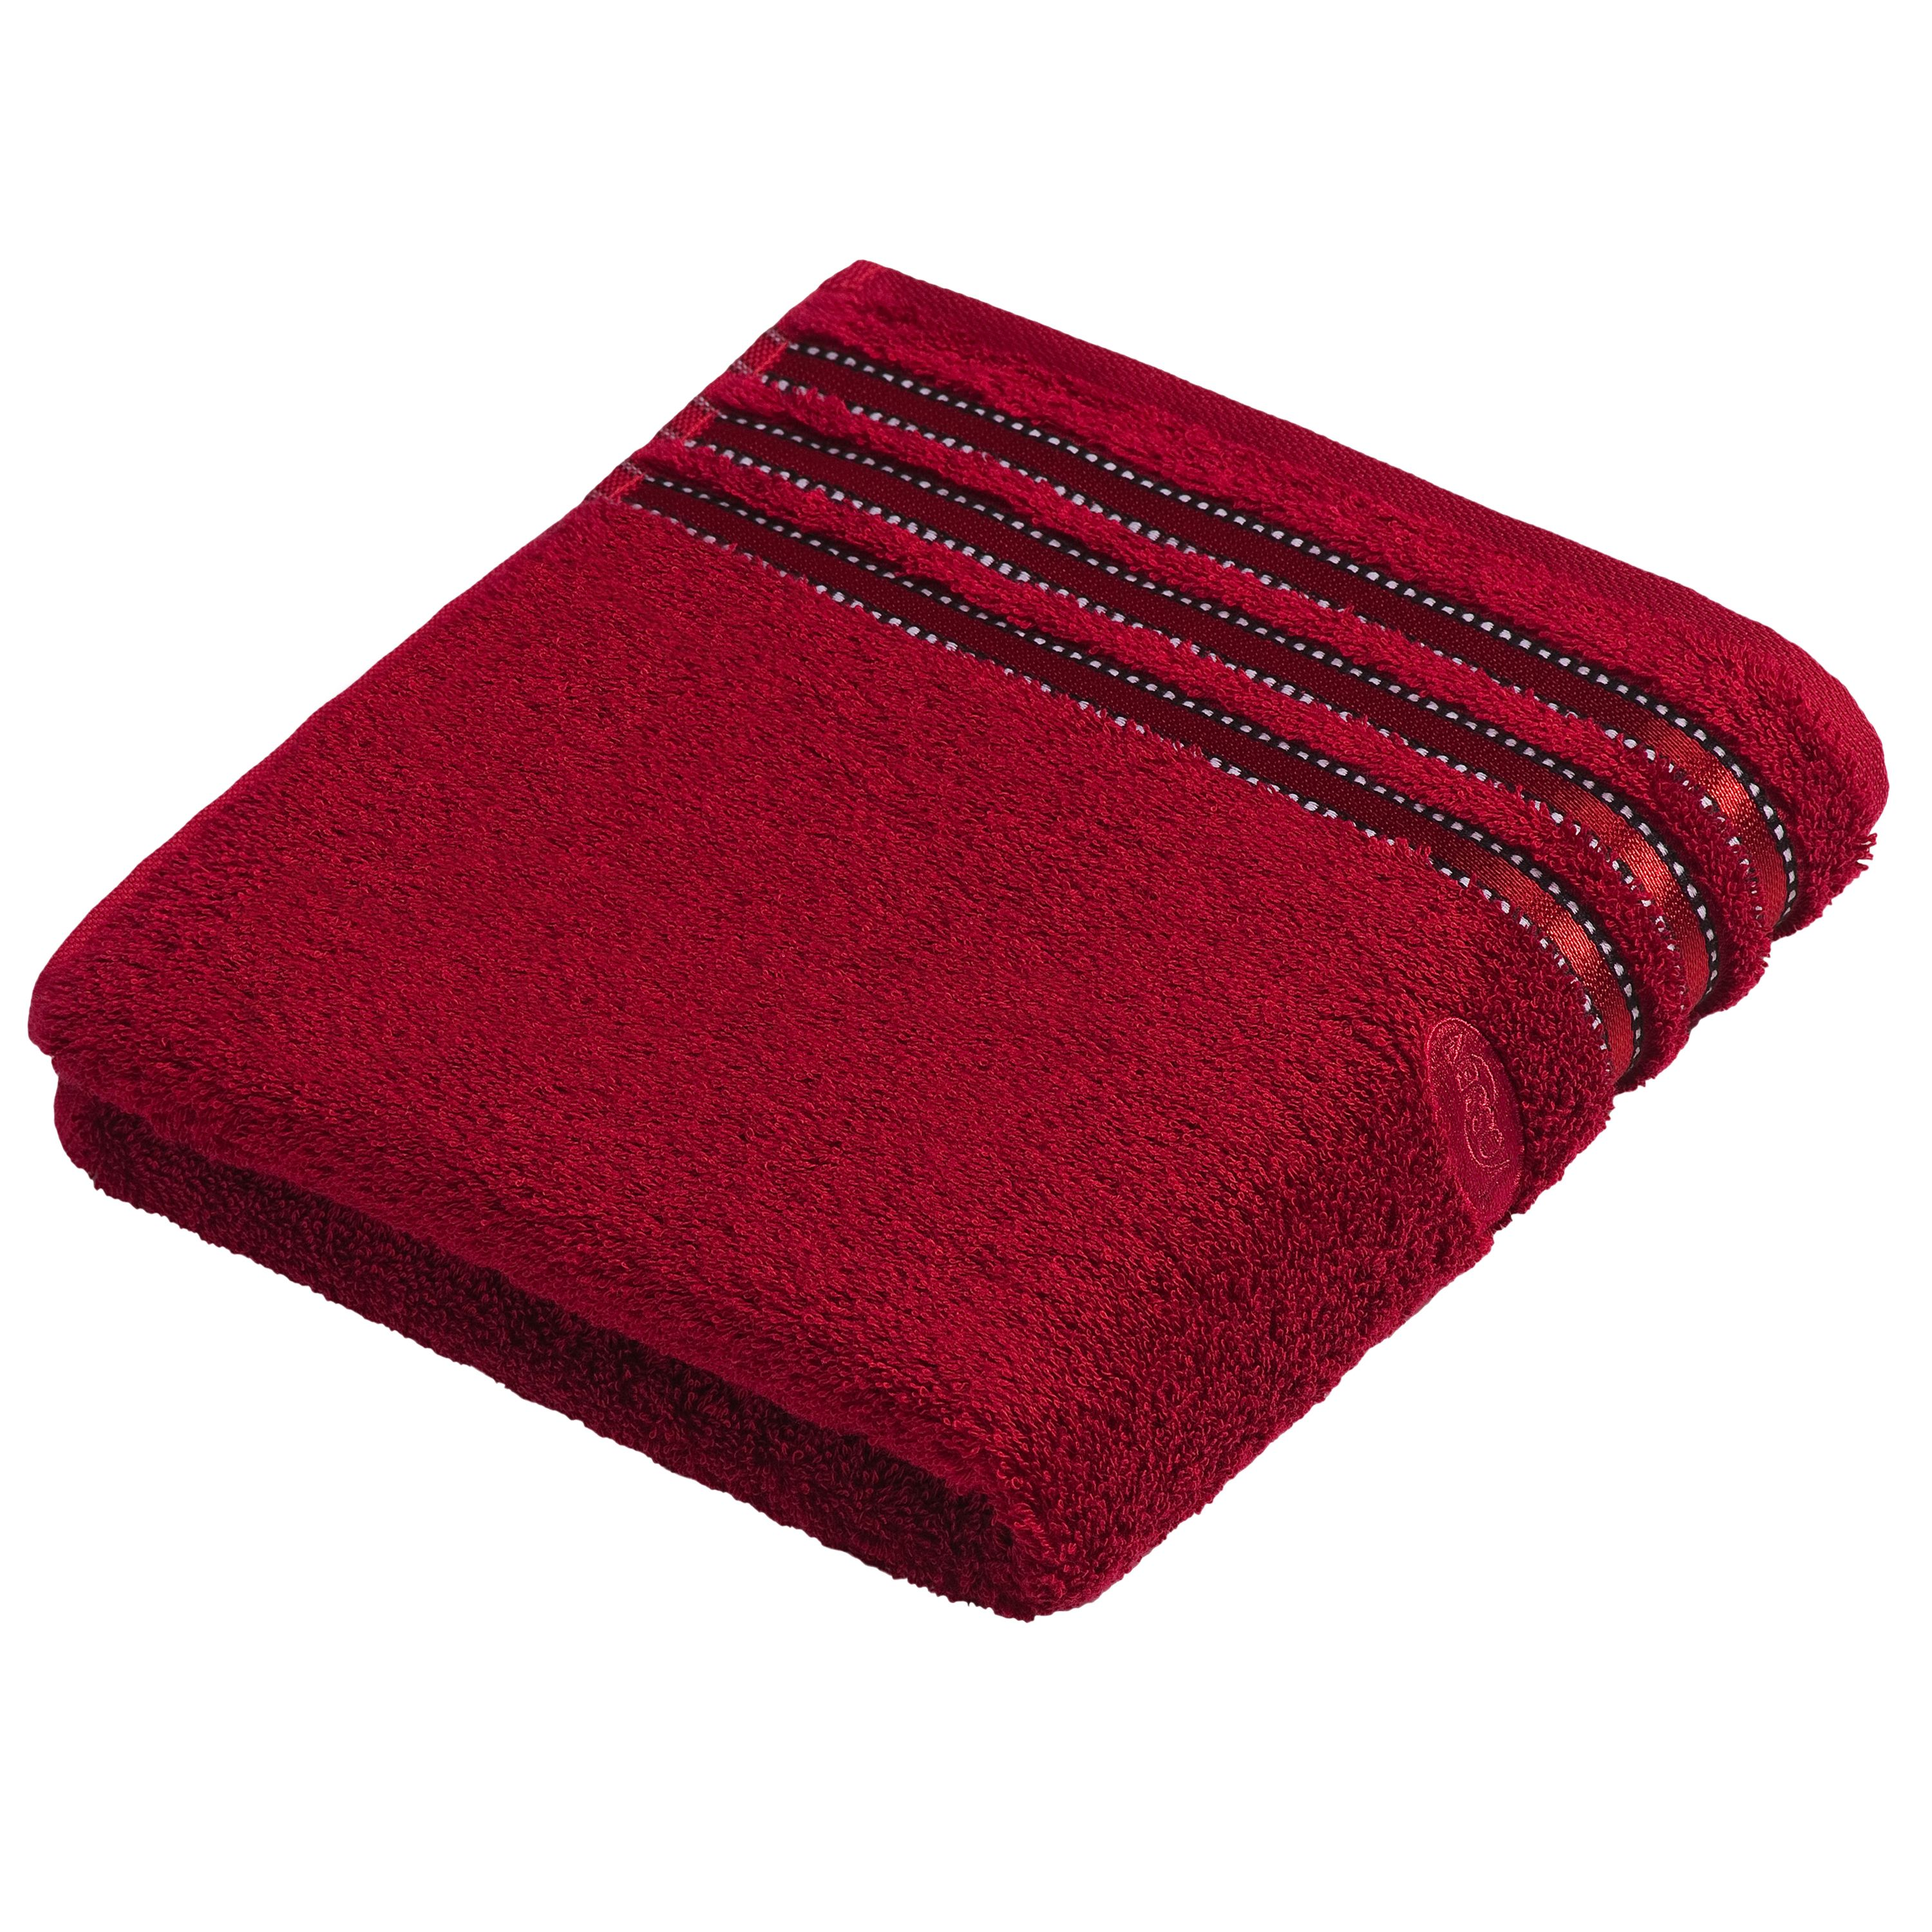 Cult de lux ruby towel range